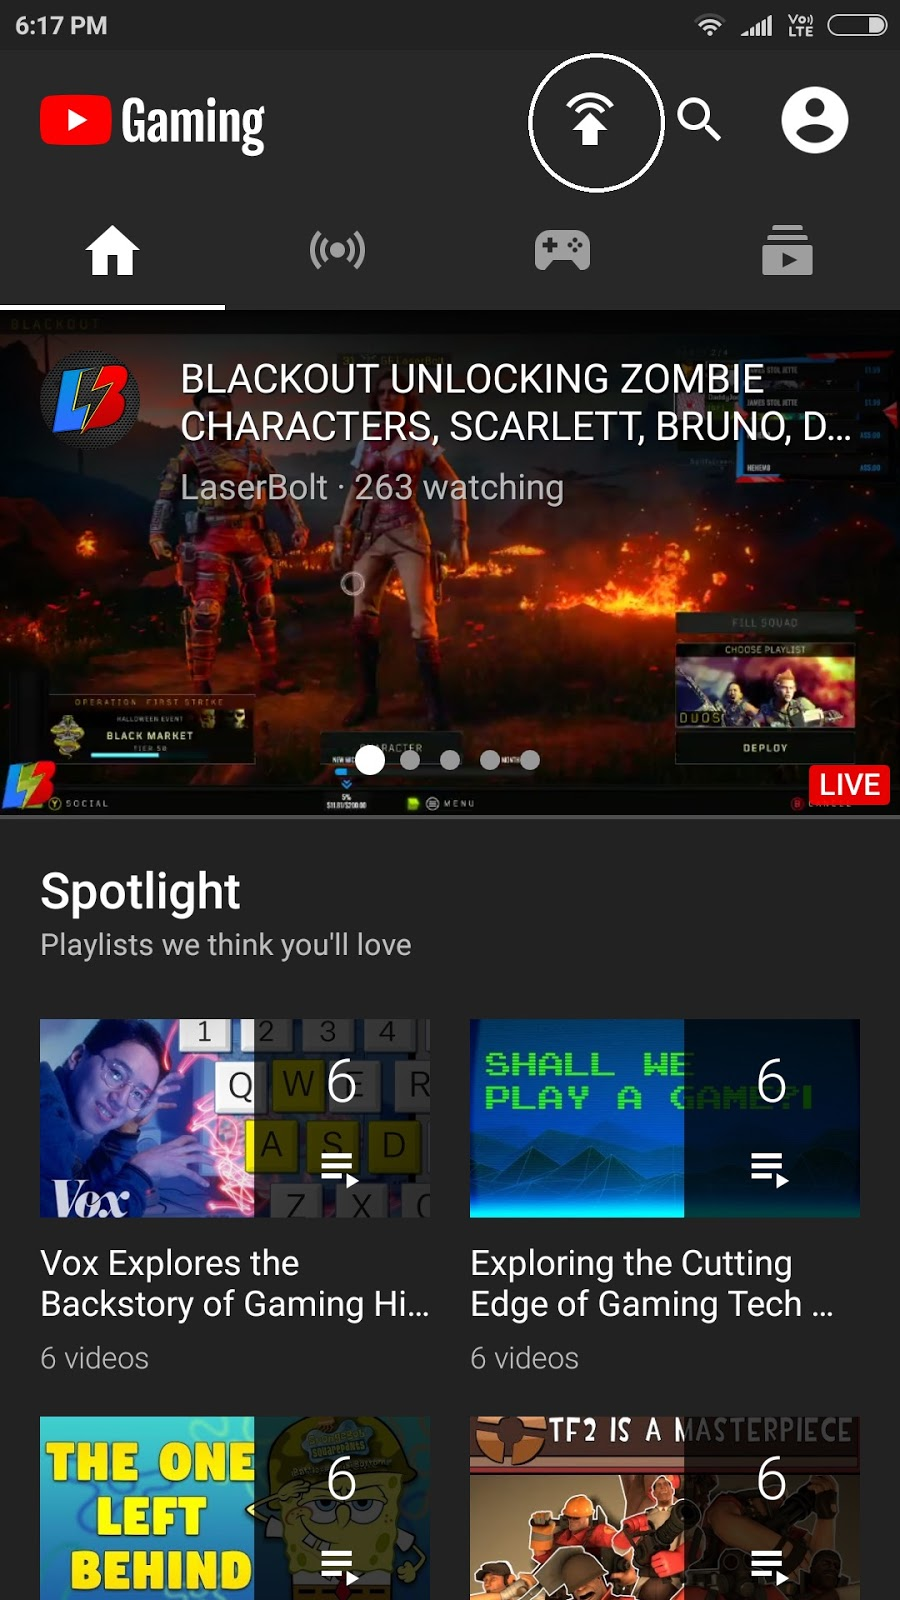 Live Stream of Games on YouTube from Android Mobile Phone